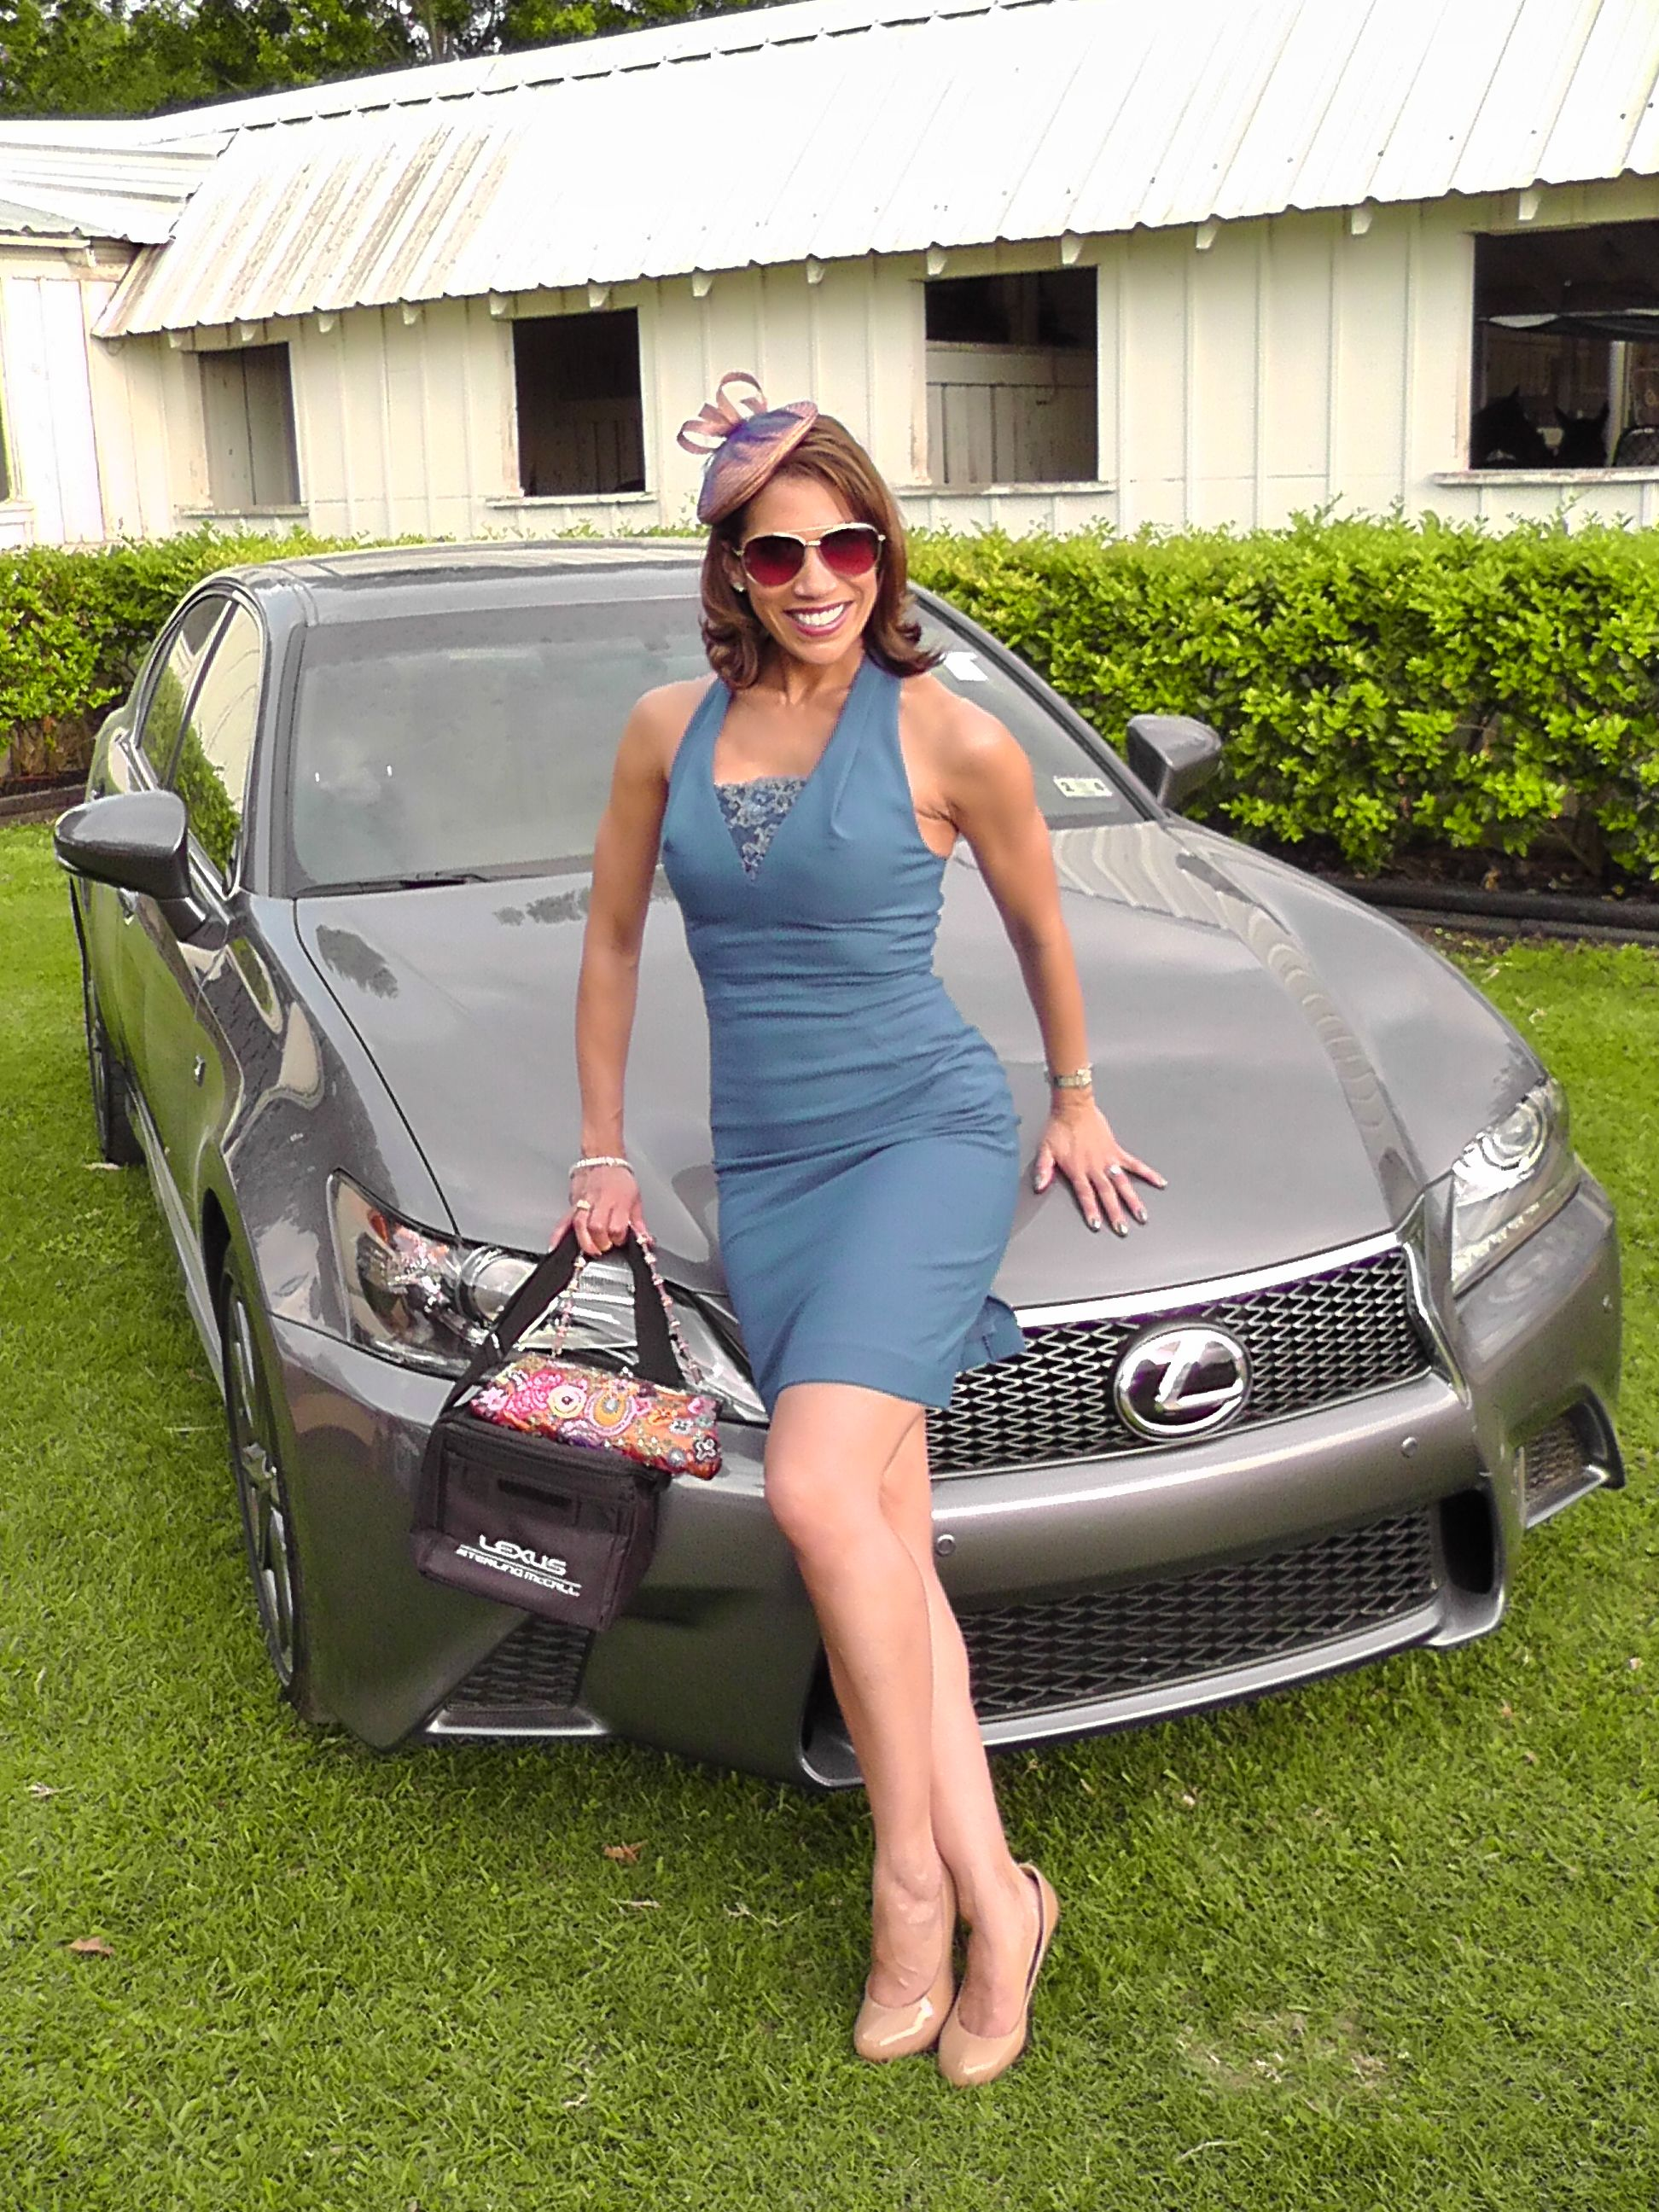 KPRC channel 2 Houston s own Rachel McNeill and the Lexus GS350